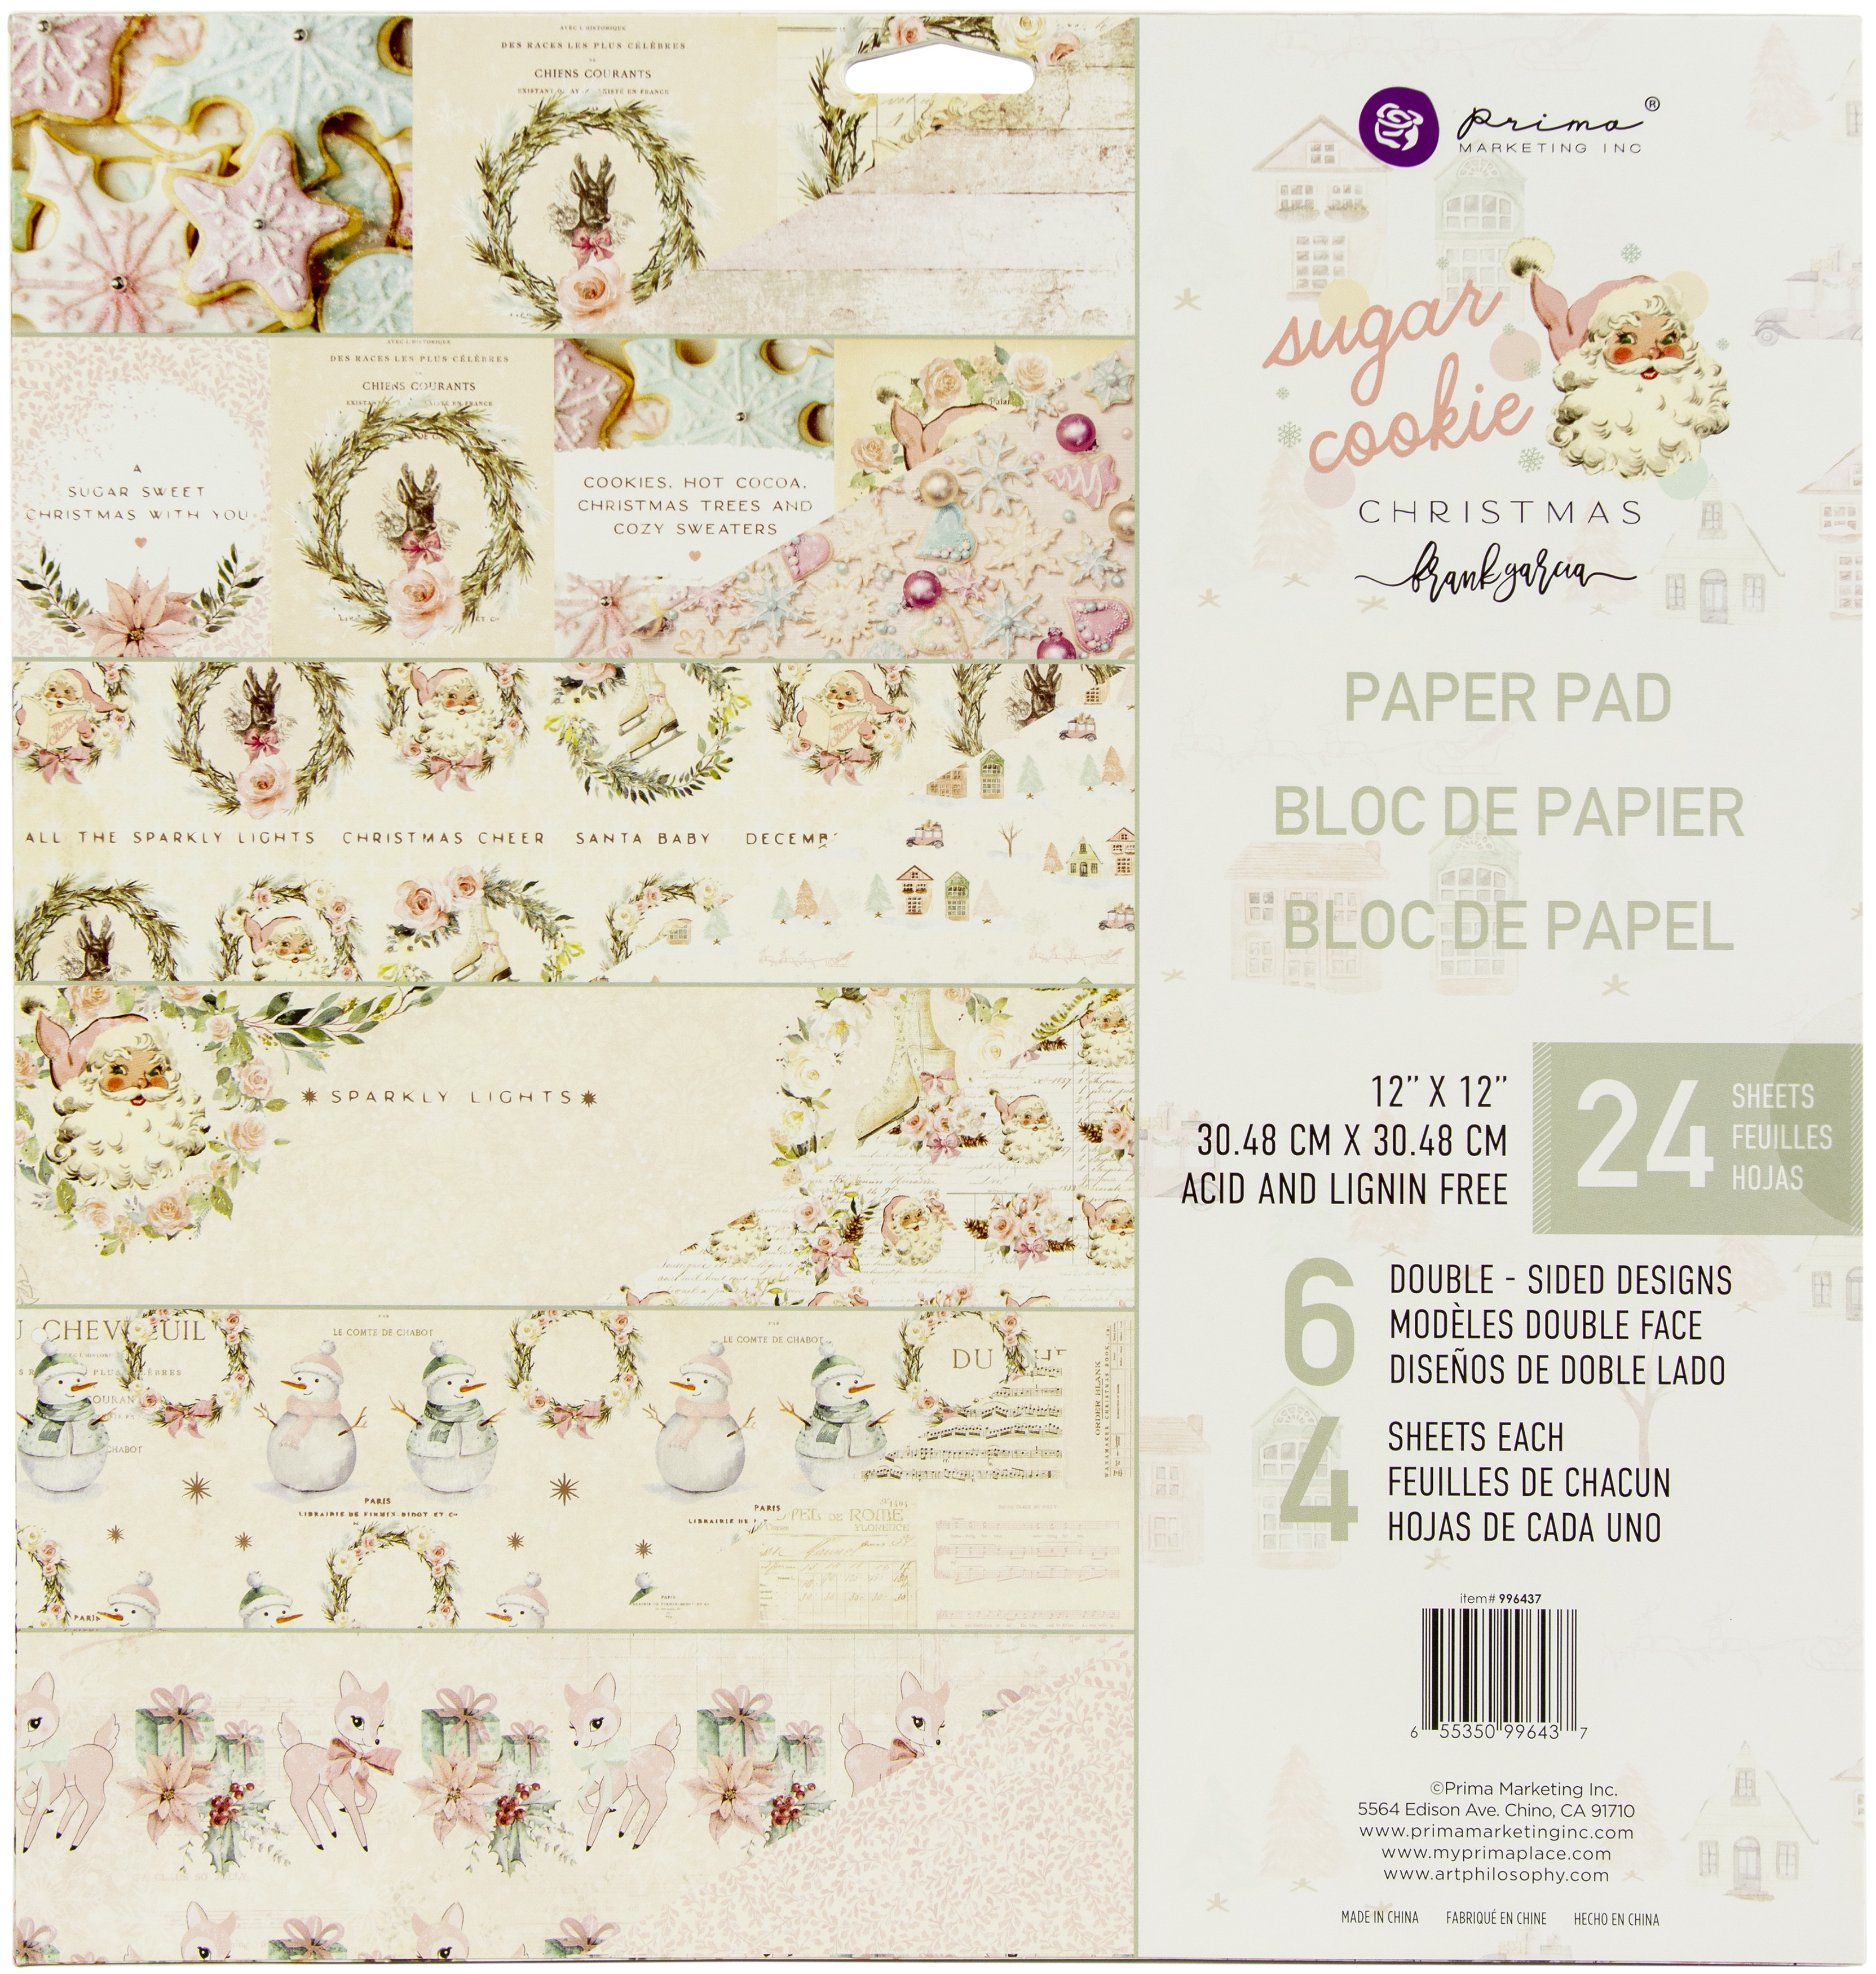 Prima Marketing Double-Sided Paper Pad 12x12 24/Pkg - Sugar Cookie